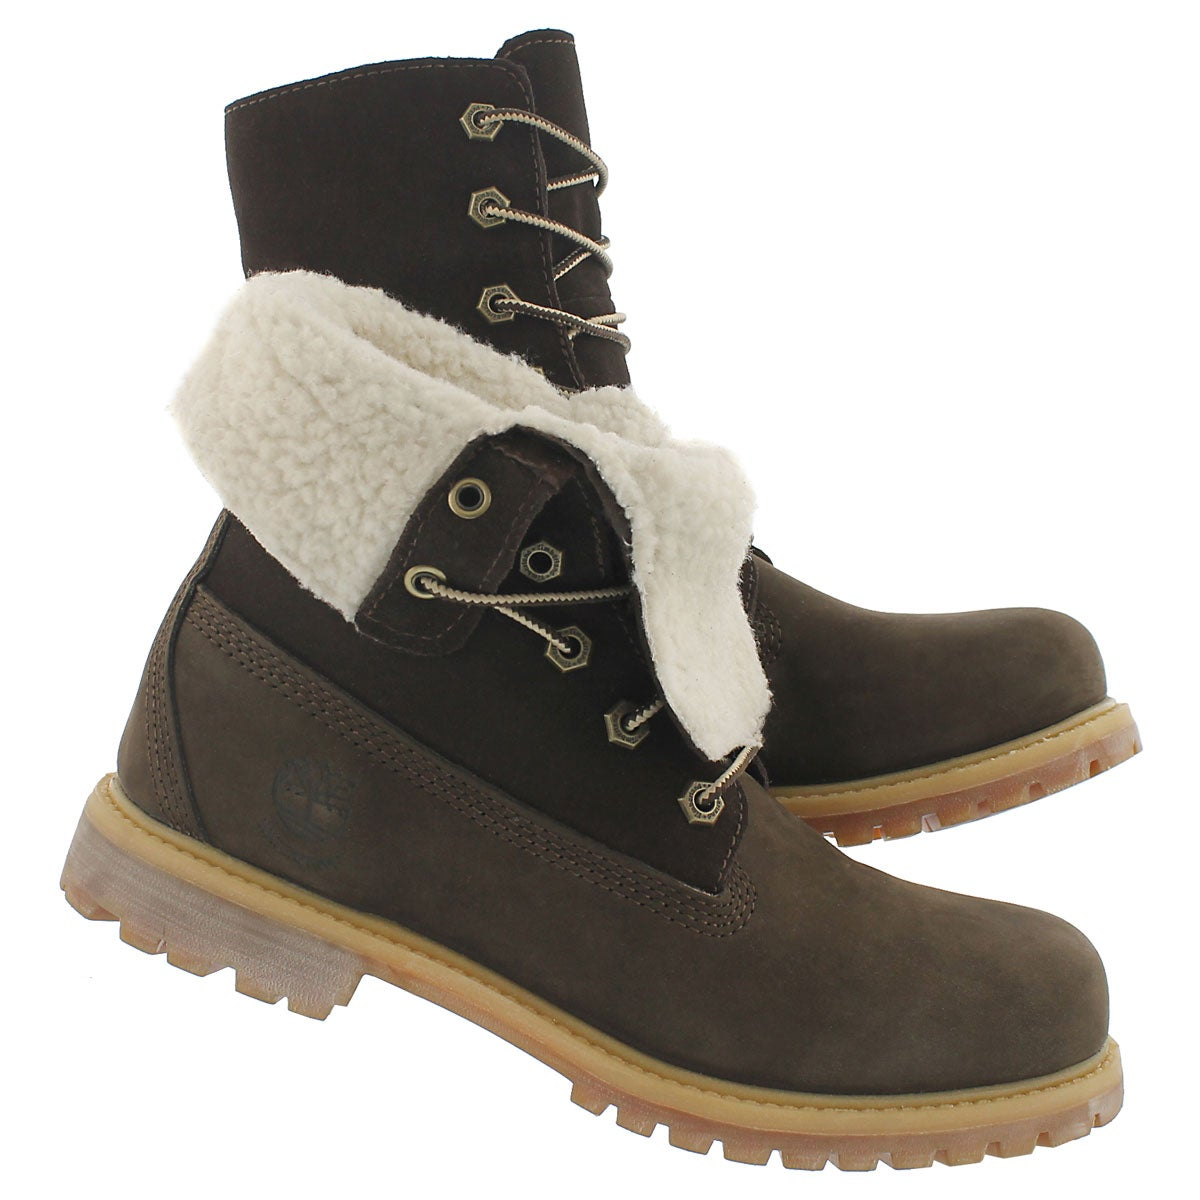 Lds AuthenticsTeddy brn fold down boot